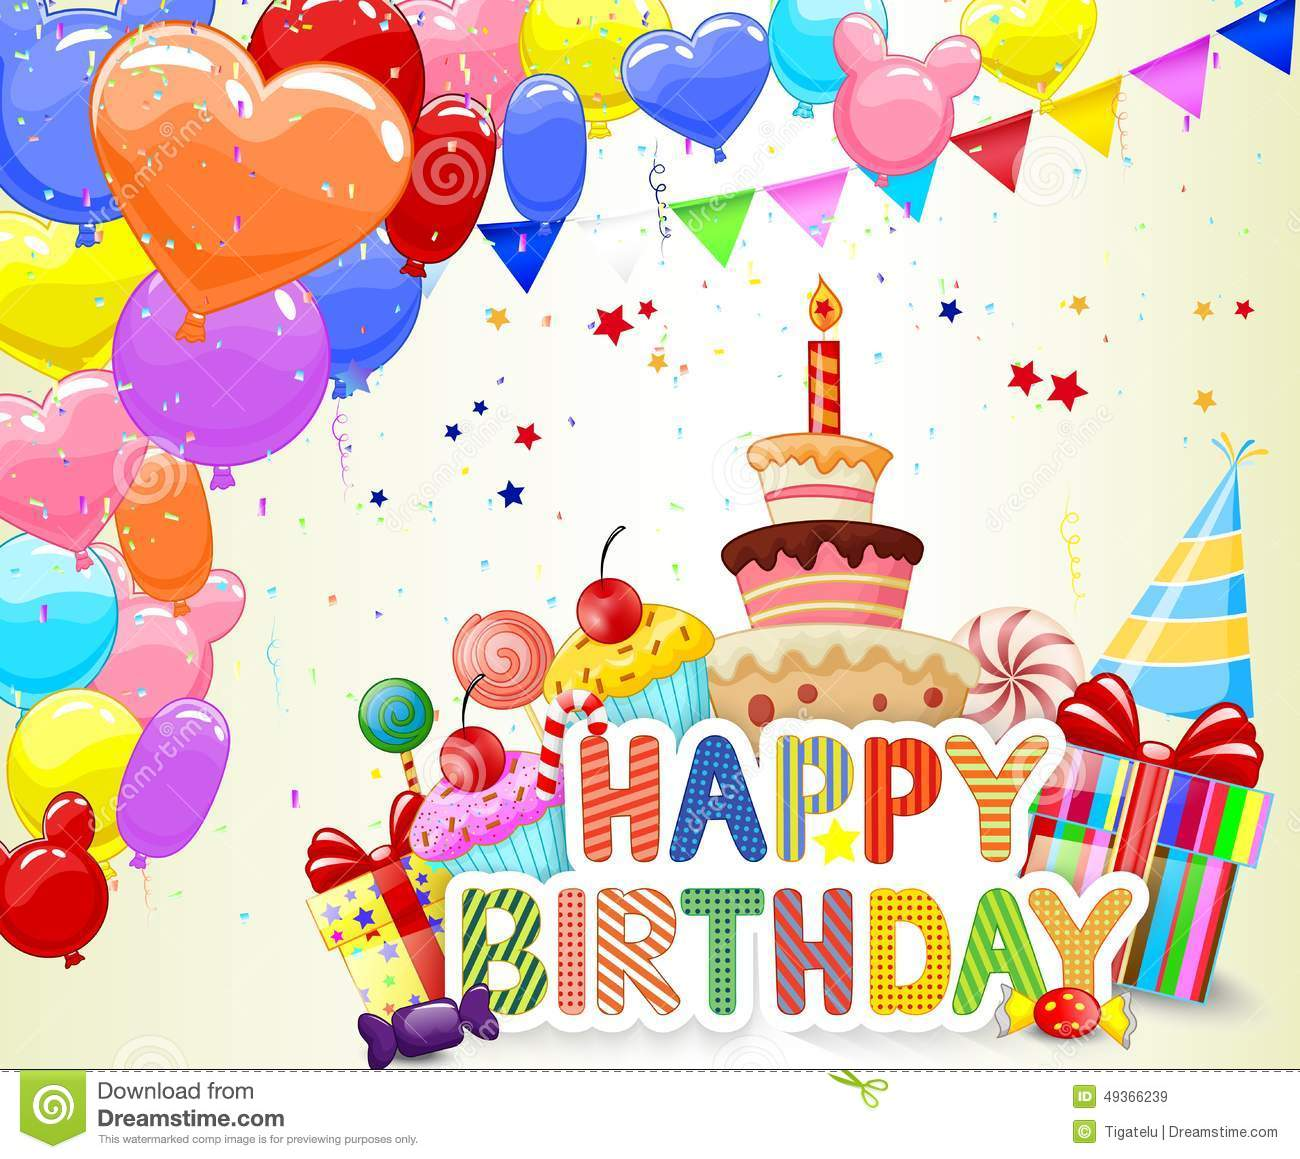 Birthday Cake Cartoon Stock Illustrations 40 334 Birthday Cake Cartoon Stock Illustrations Vectors Clipart Dreamstime